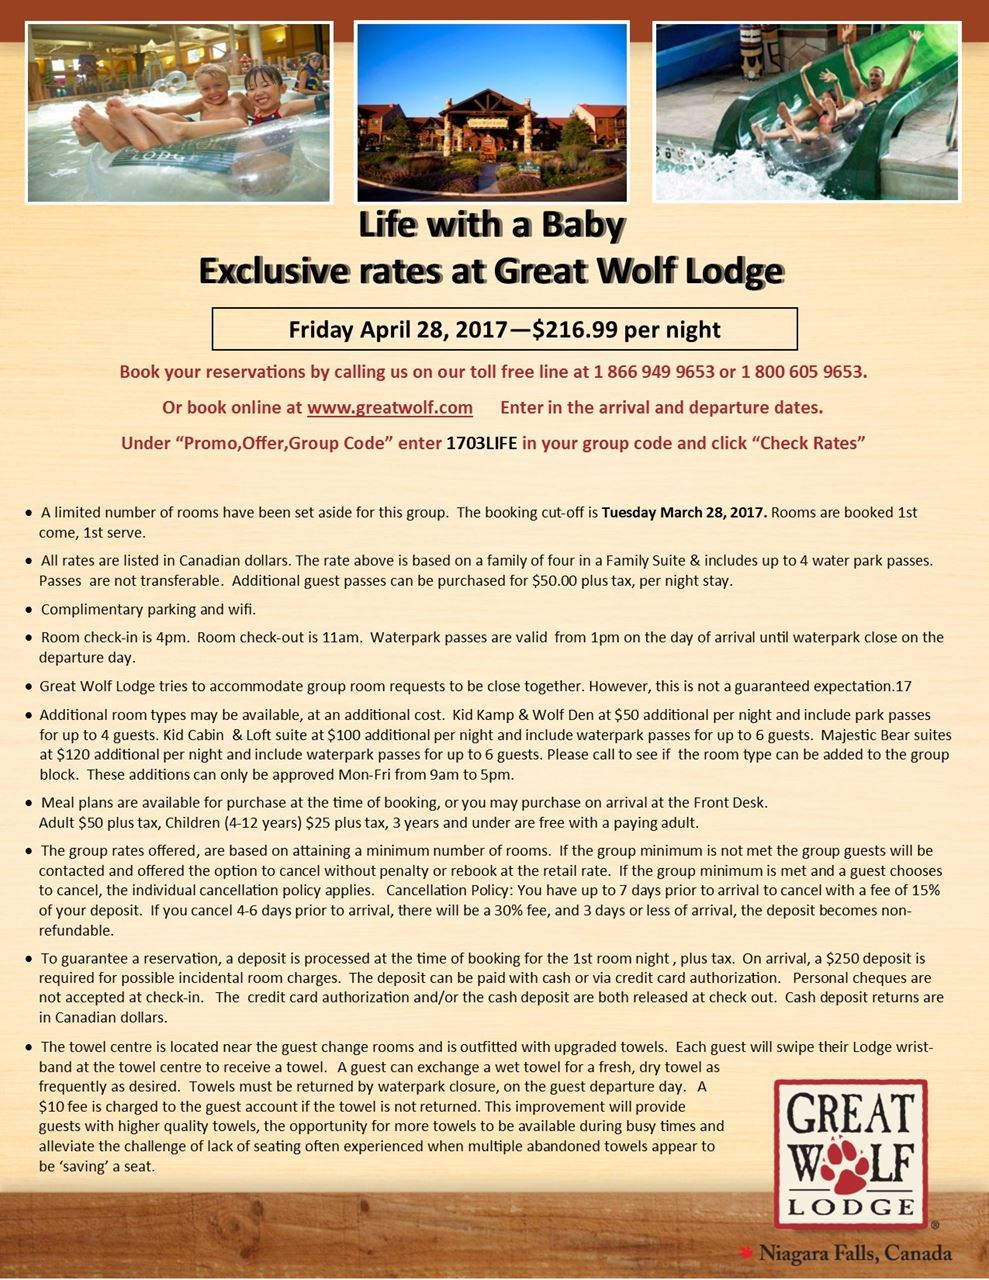 Life With A Baby - Great Wolf Lodge Group rate